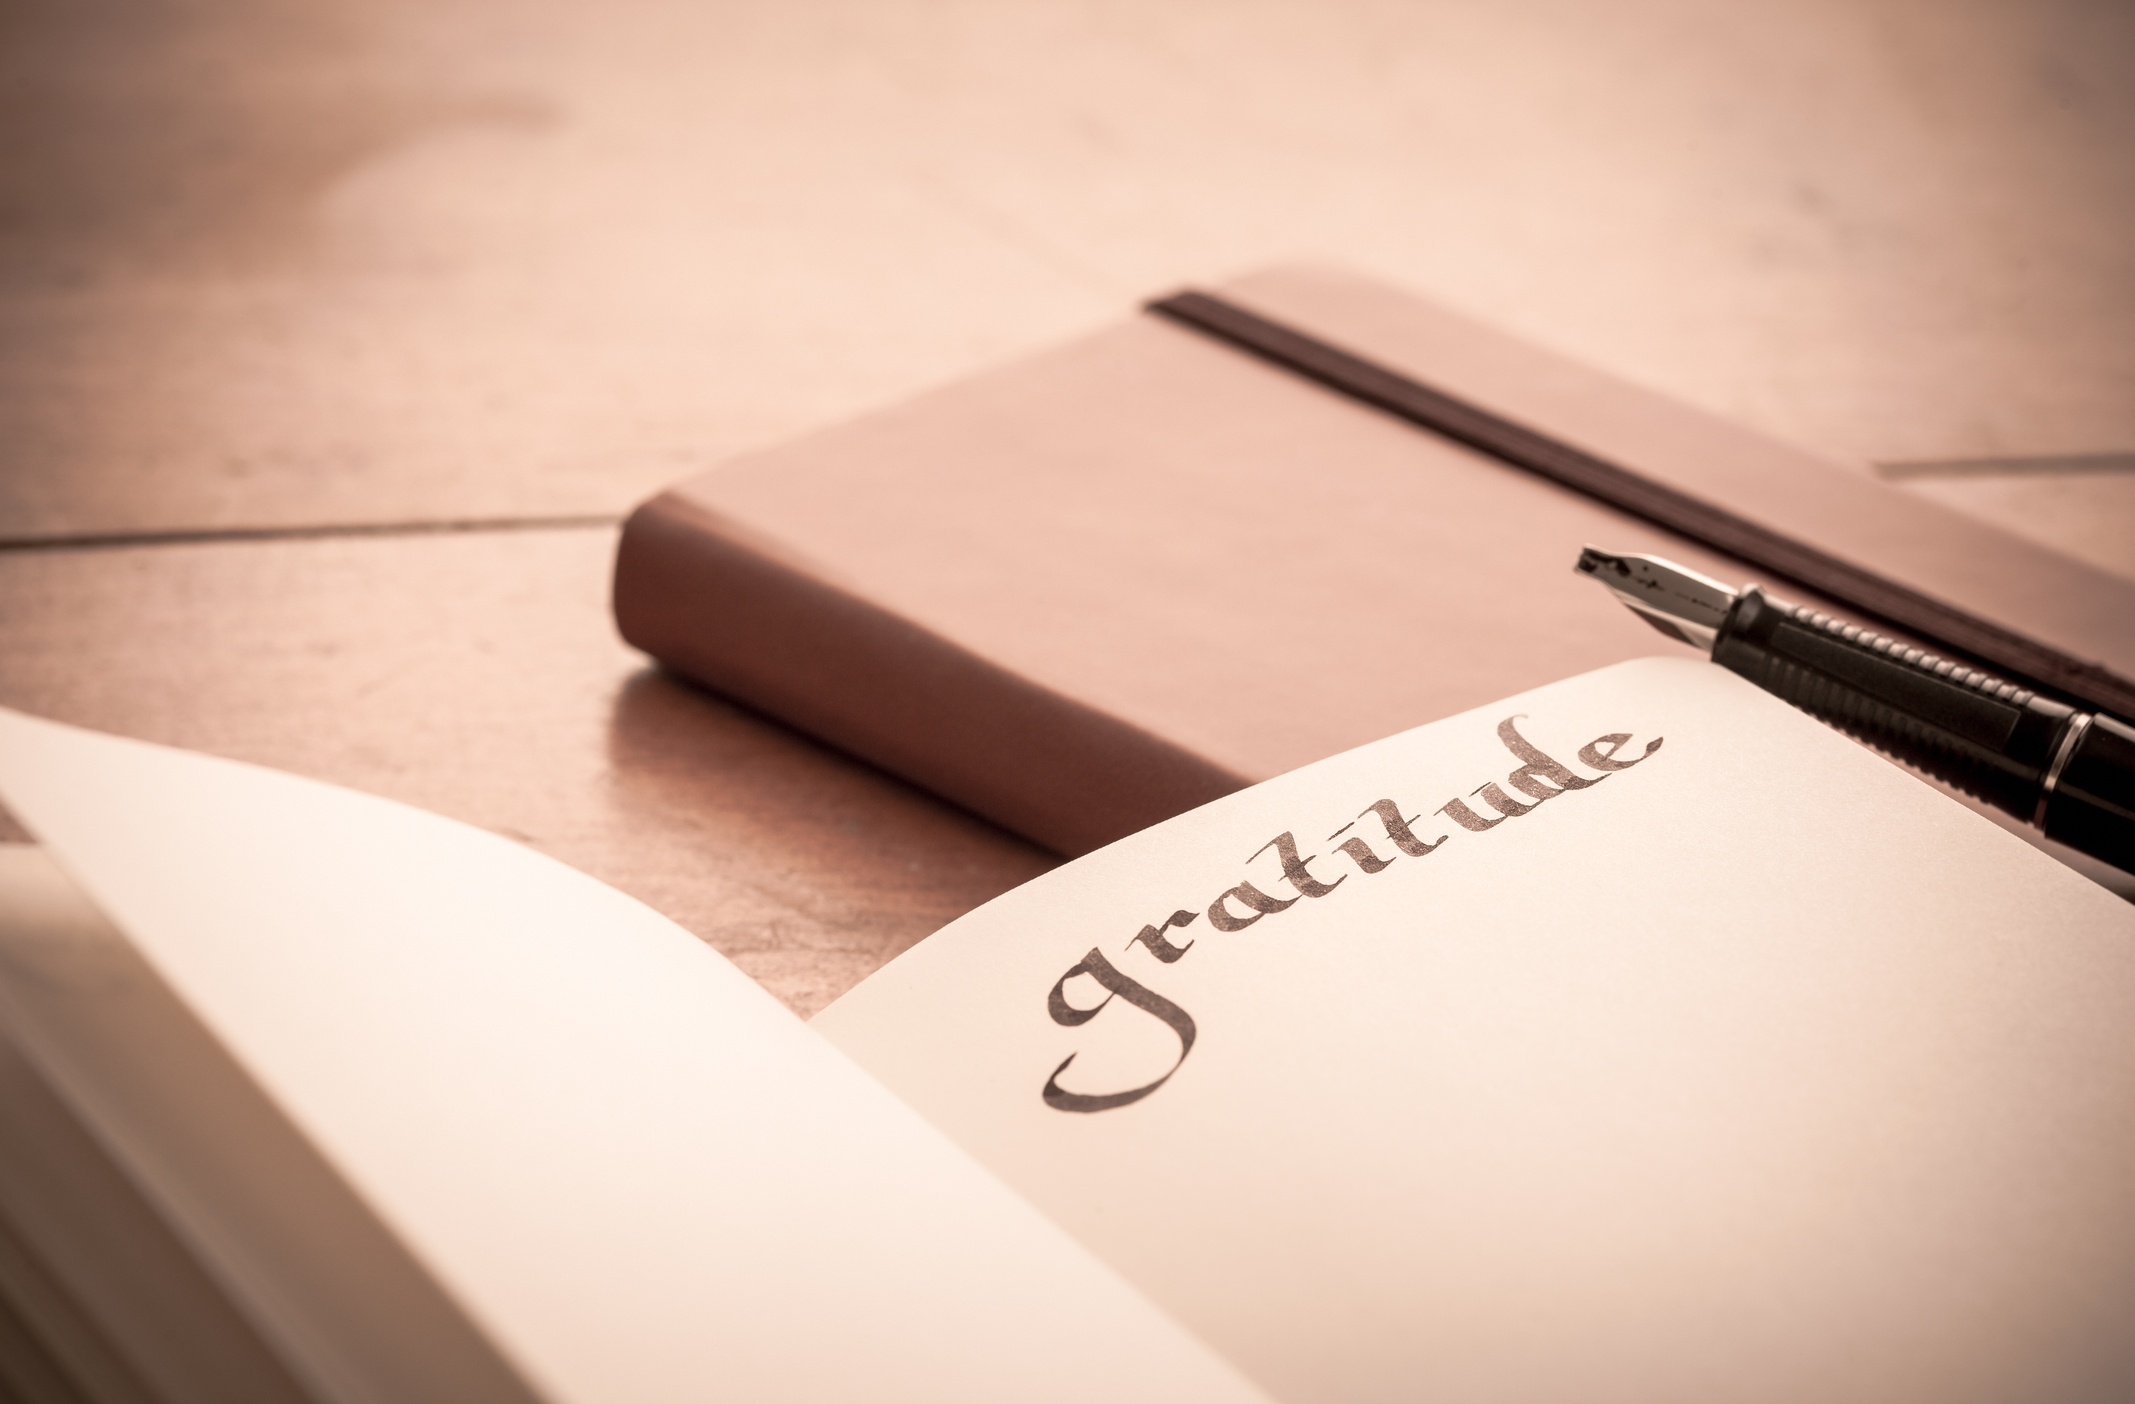 A gratitude journal is a great way to build positivity